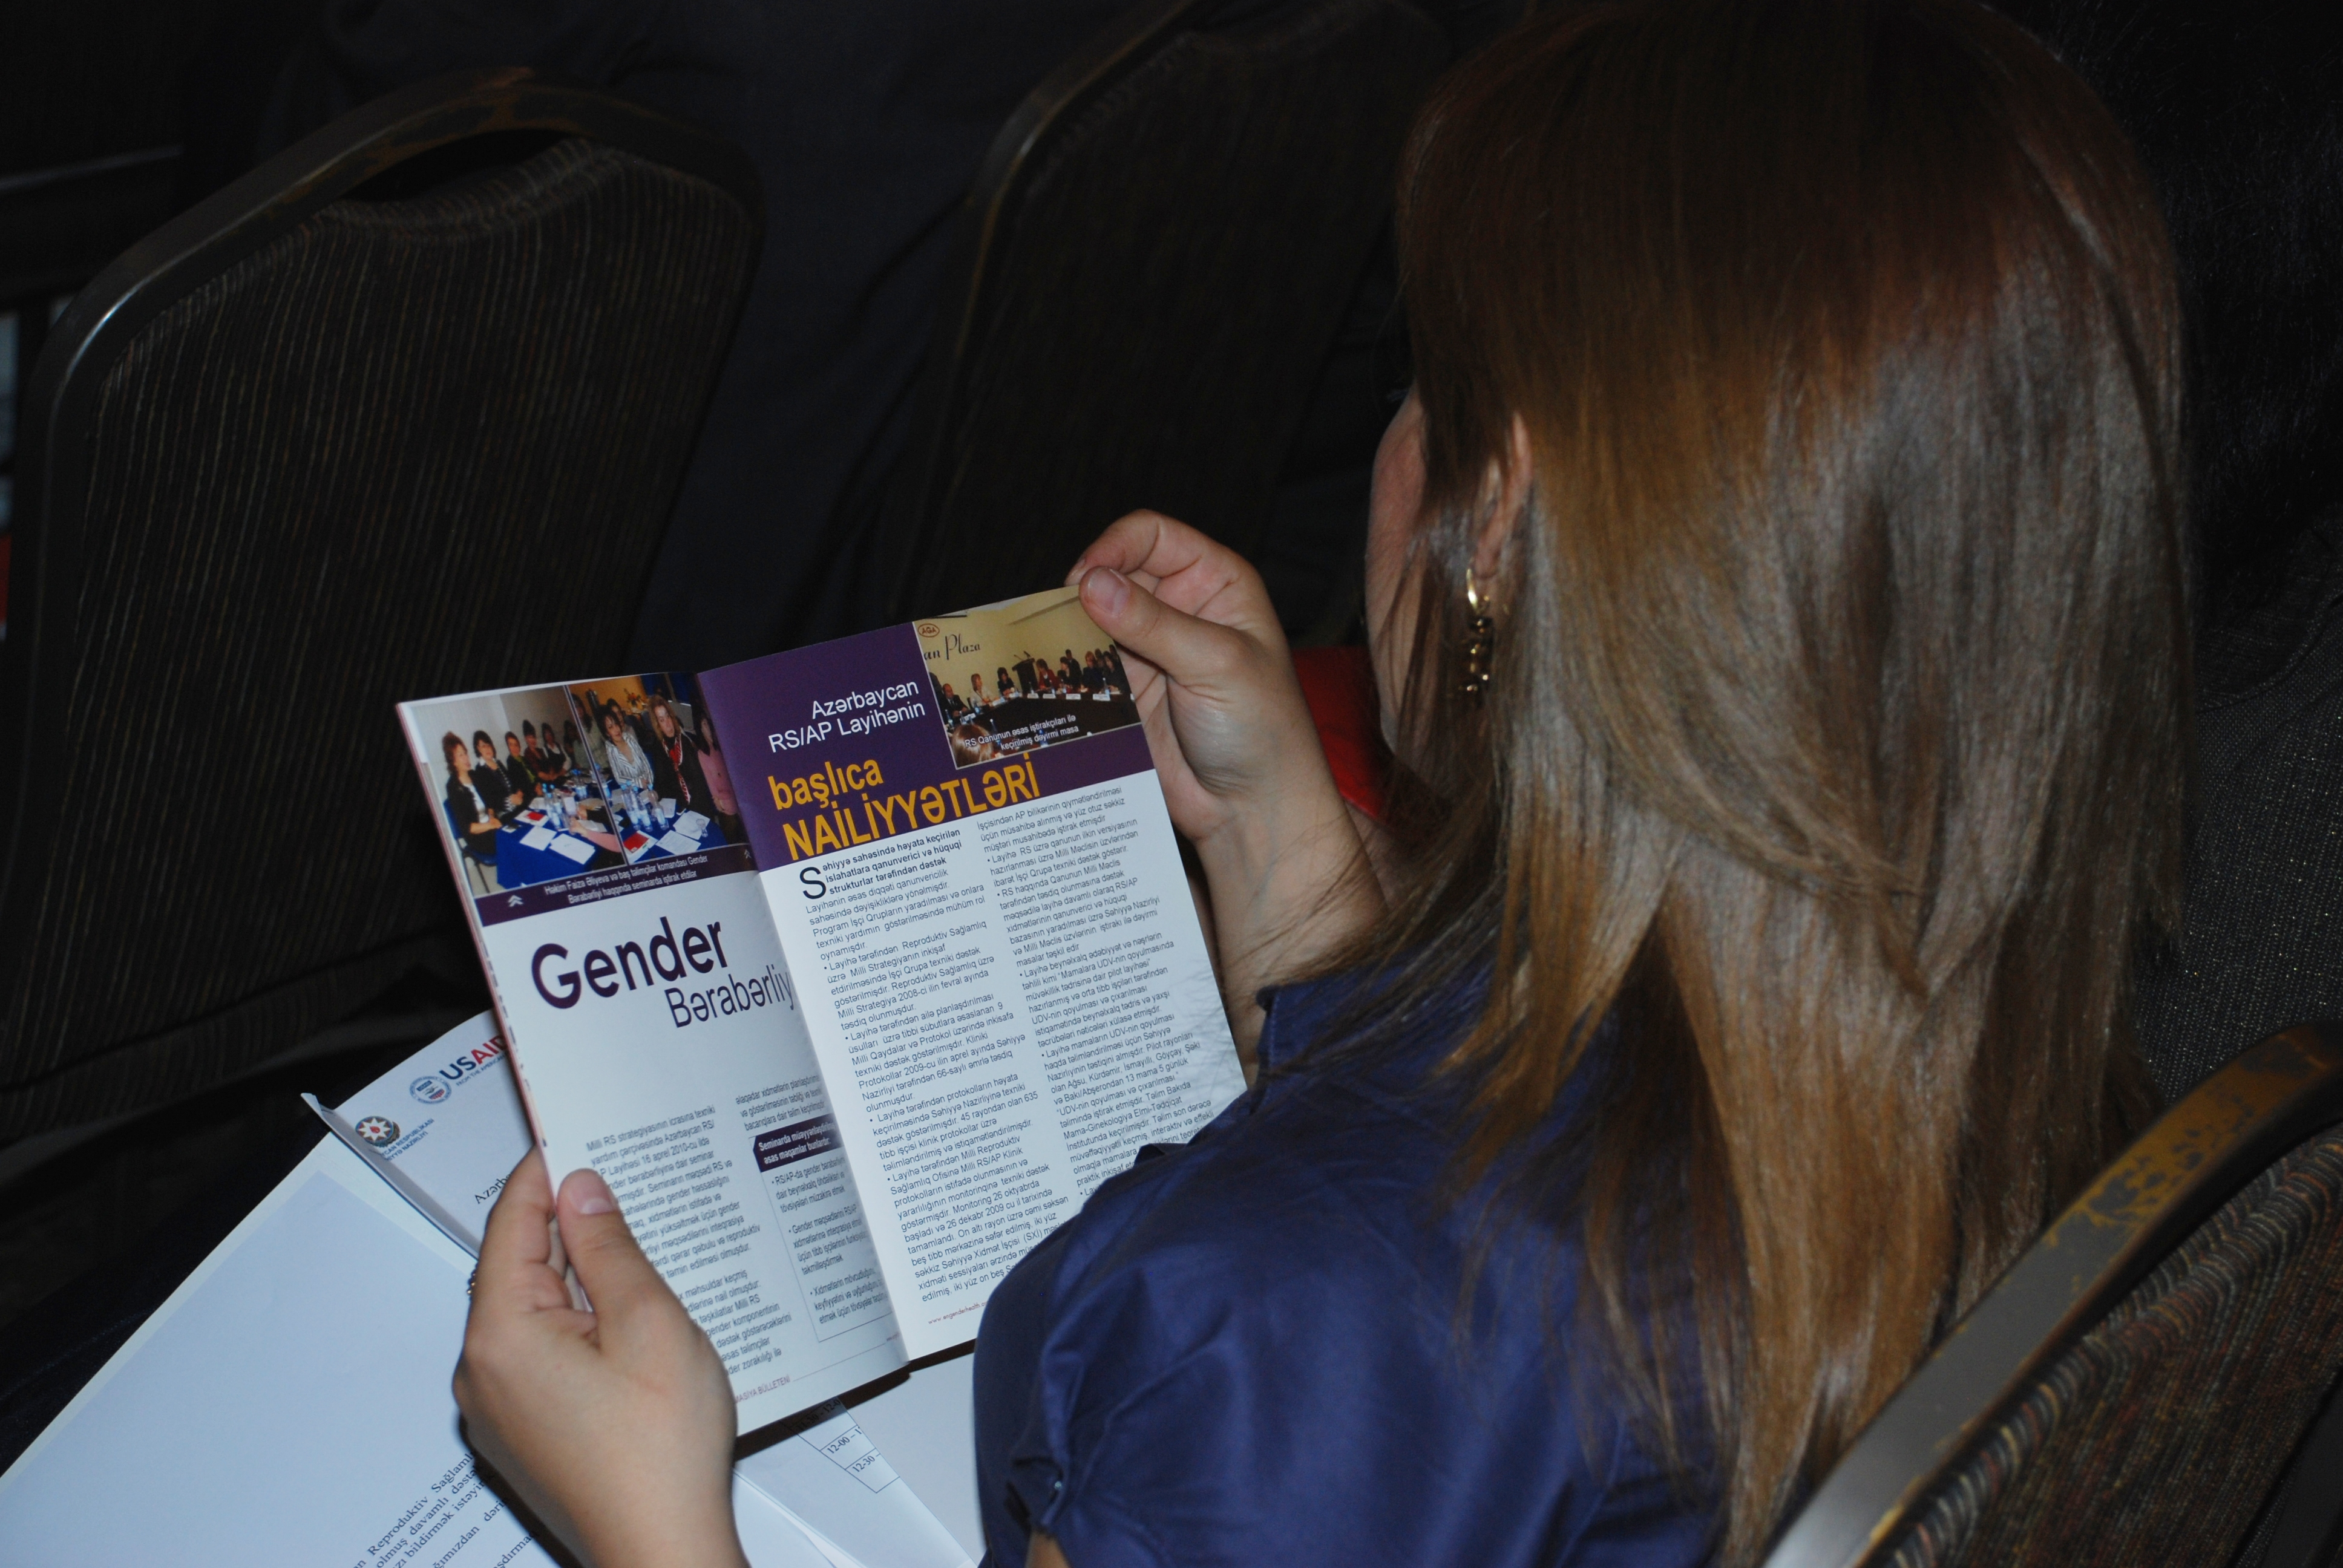 A woman browses program material